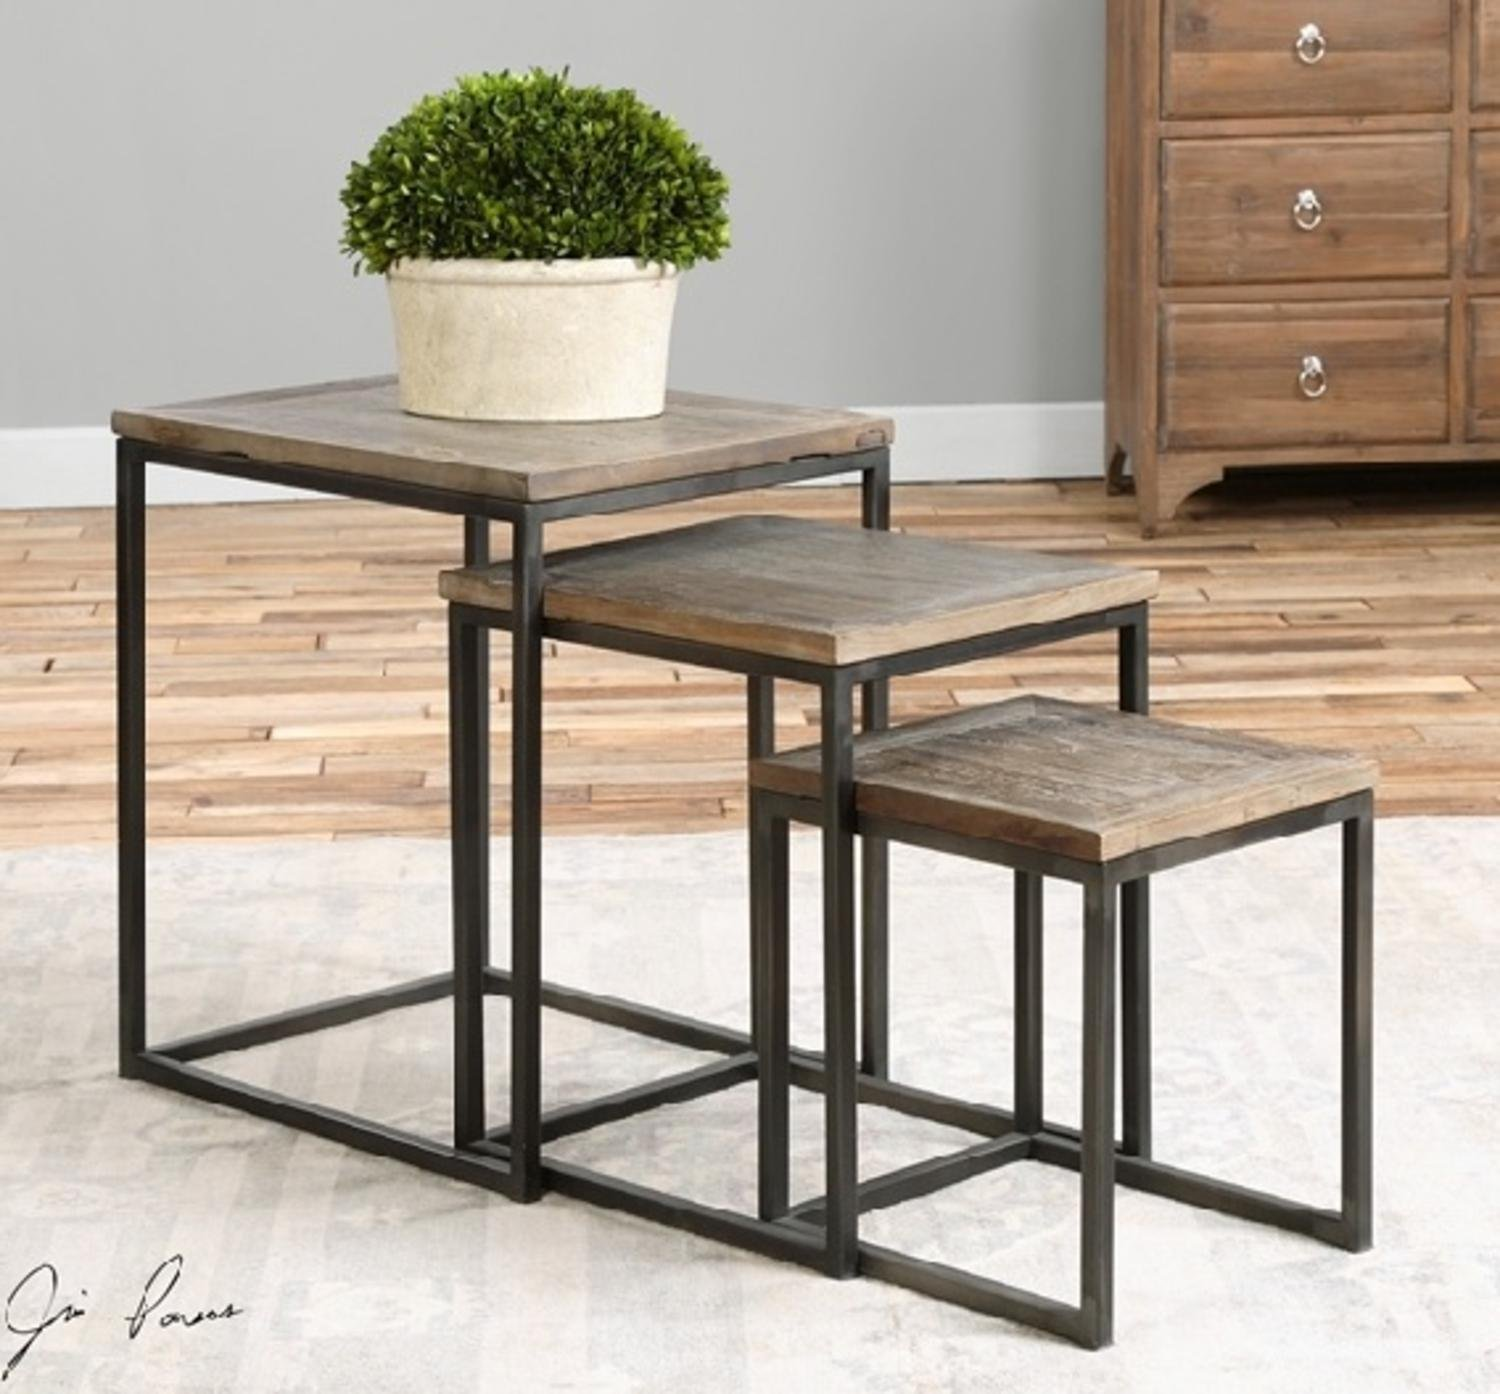 Set of 3 Eco-Friendly Recycled Elm Square Wooden Nesting Tables 24''